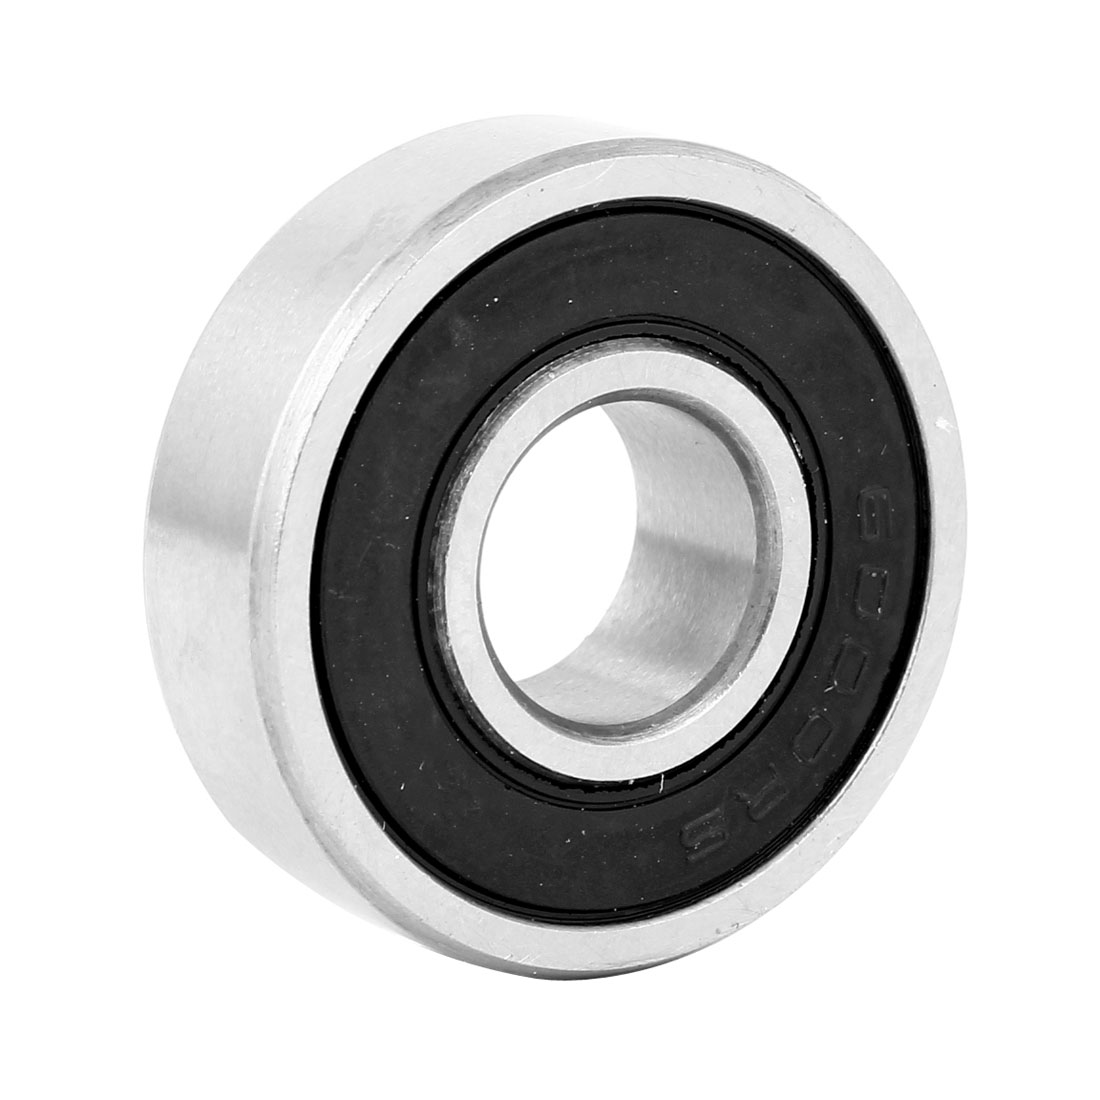 26mm x 10mm x 8mm Round Sealing Deep Groove Radial Ball Bearing 6000RS